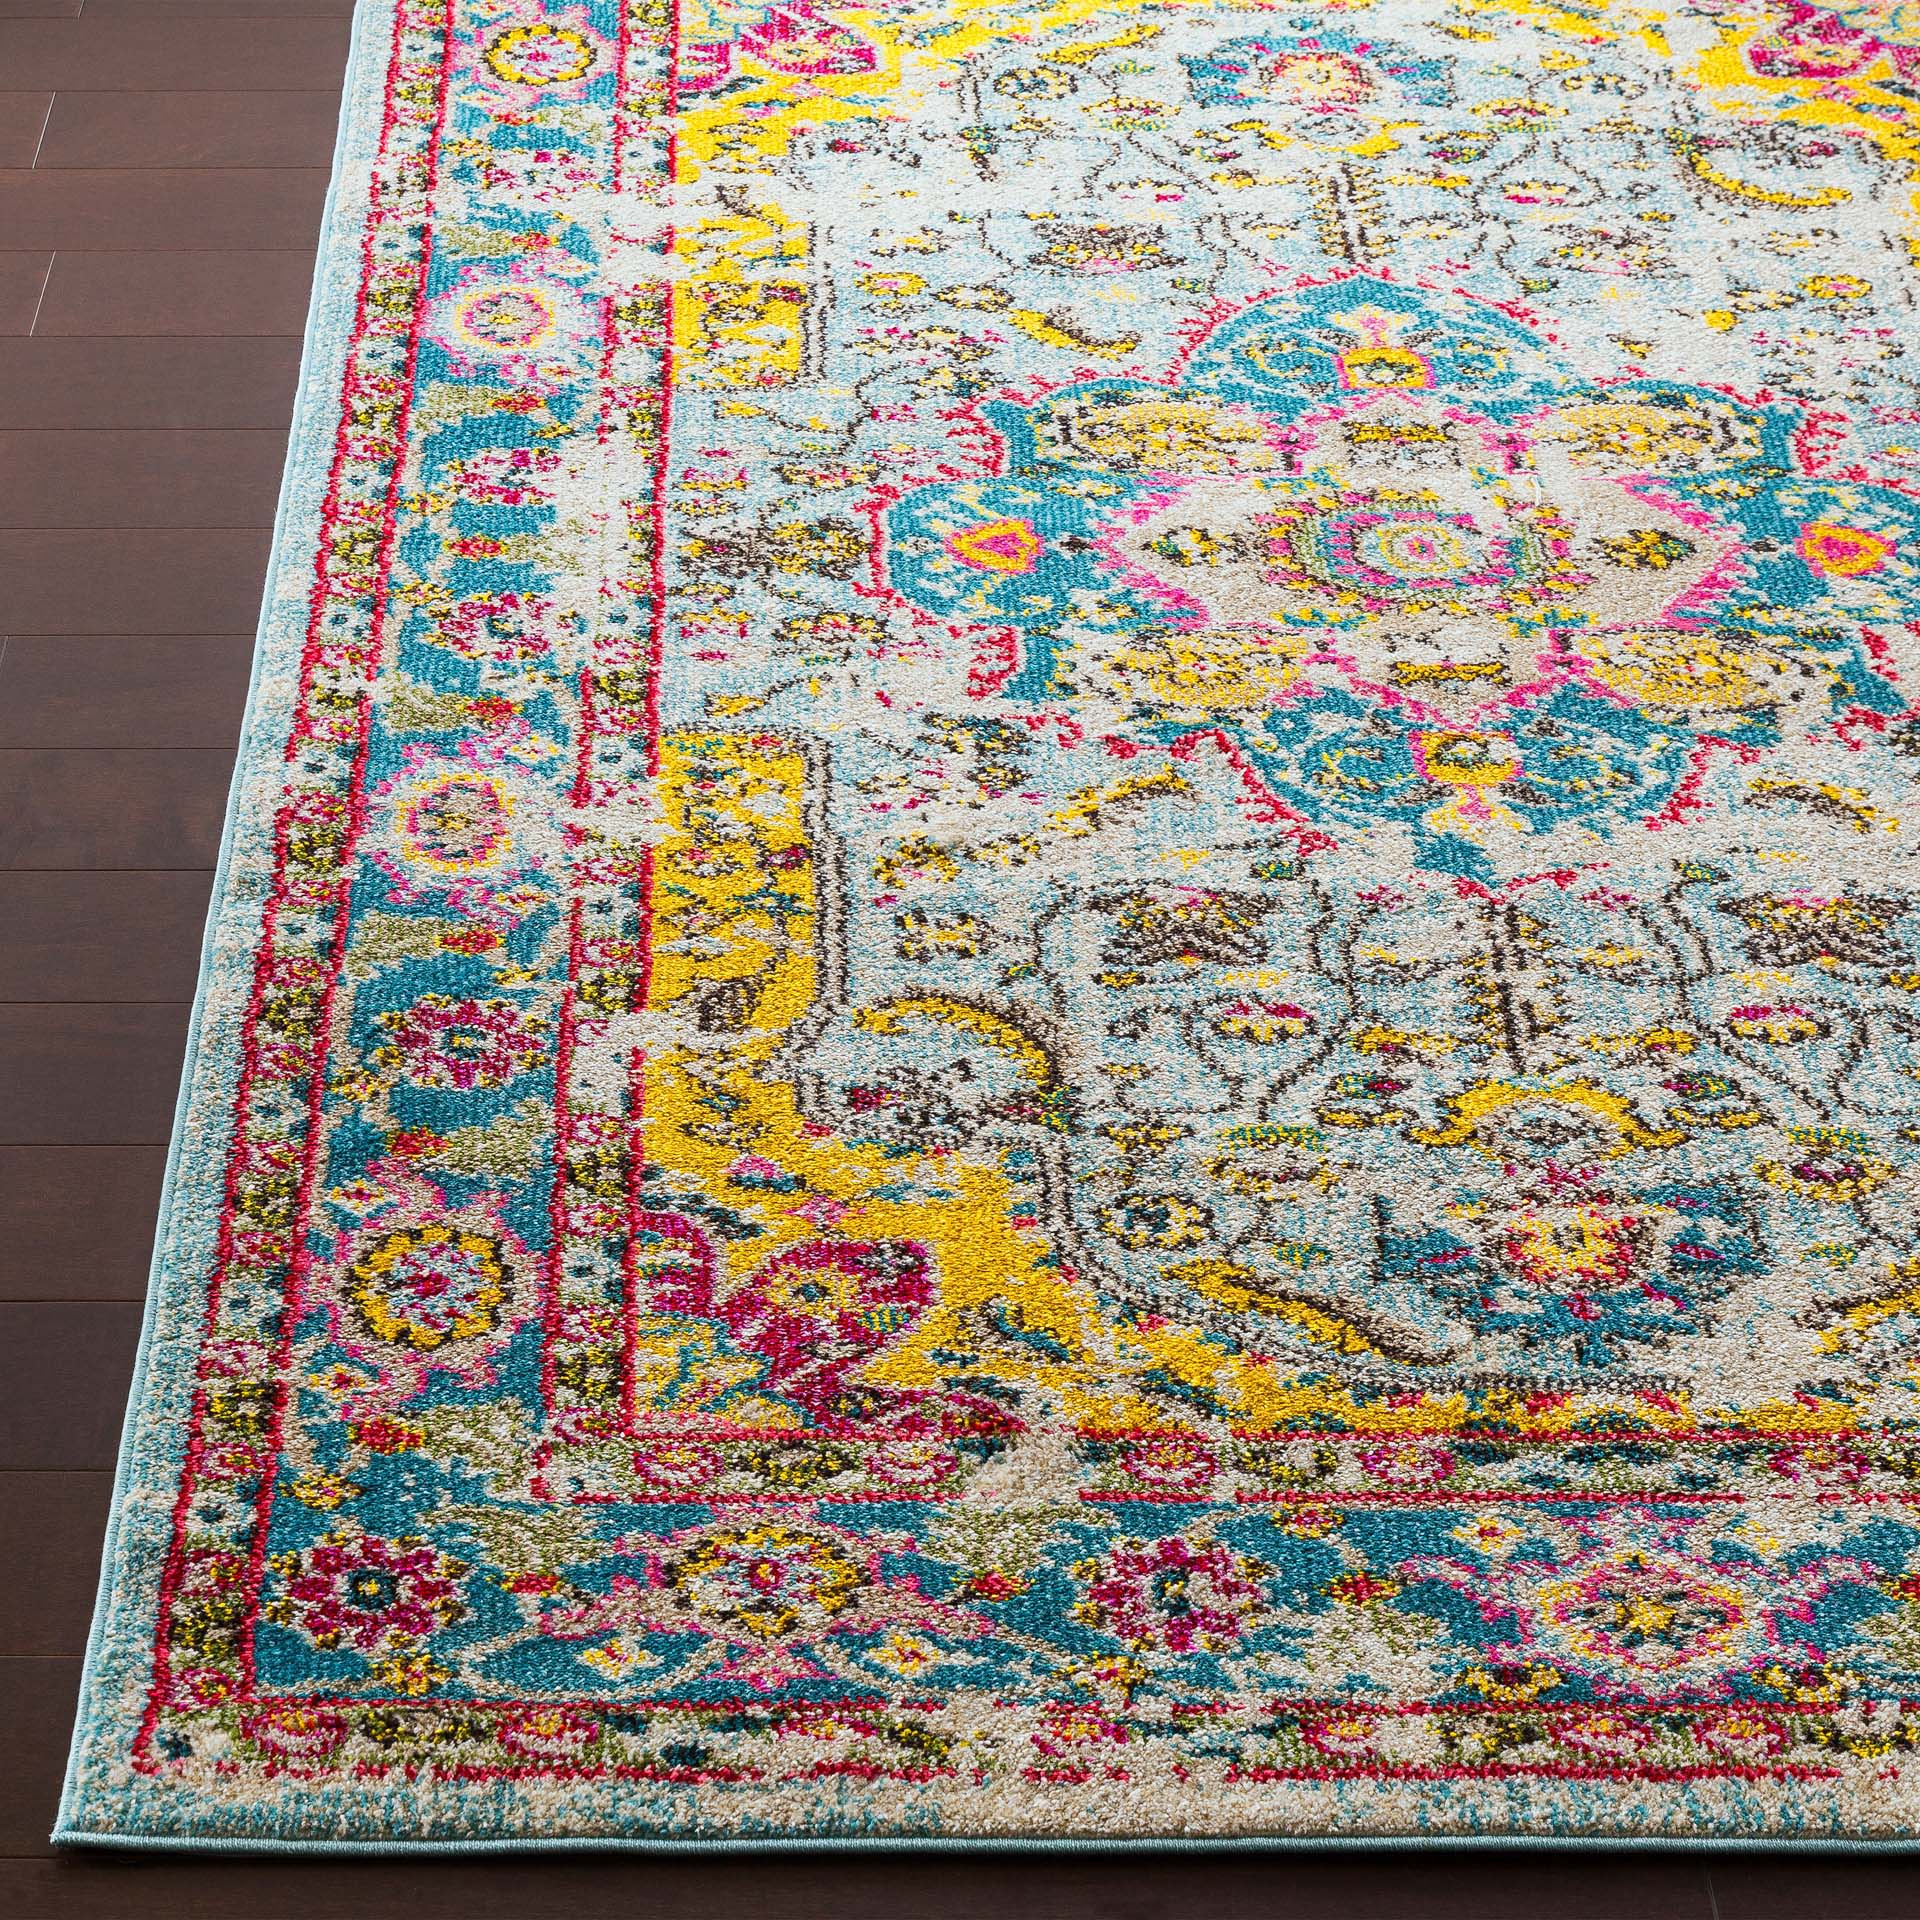 Trendy colorful 5x7 Turkish rug with hints of yellow, pink and blue from the Surya Anika Collection on wood floor - Close up Shot